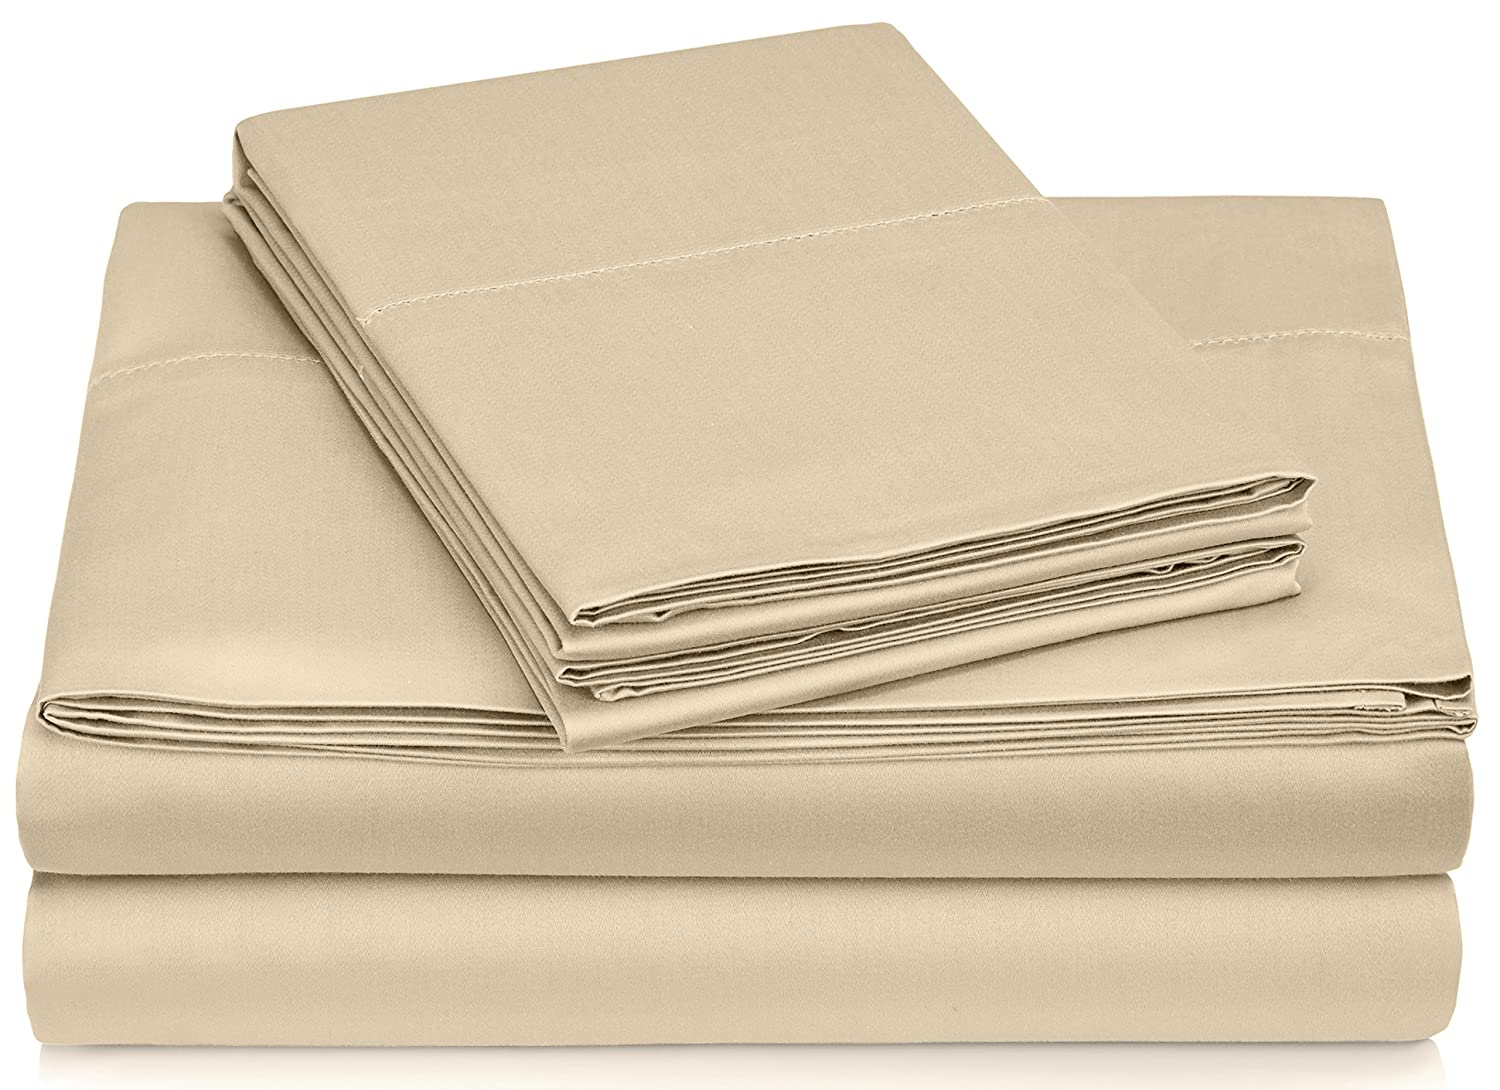 Pinzon 400-Thread-Count Hemstitch Egyptian Cotton Sheet Set - Queen, Taupe